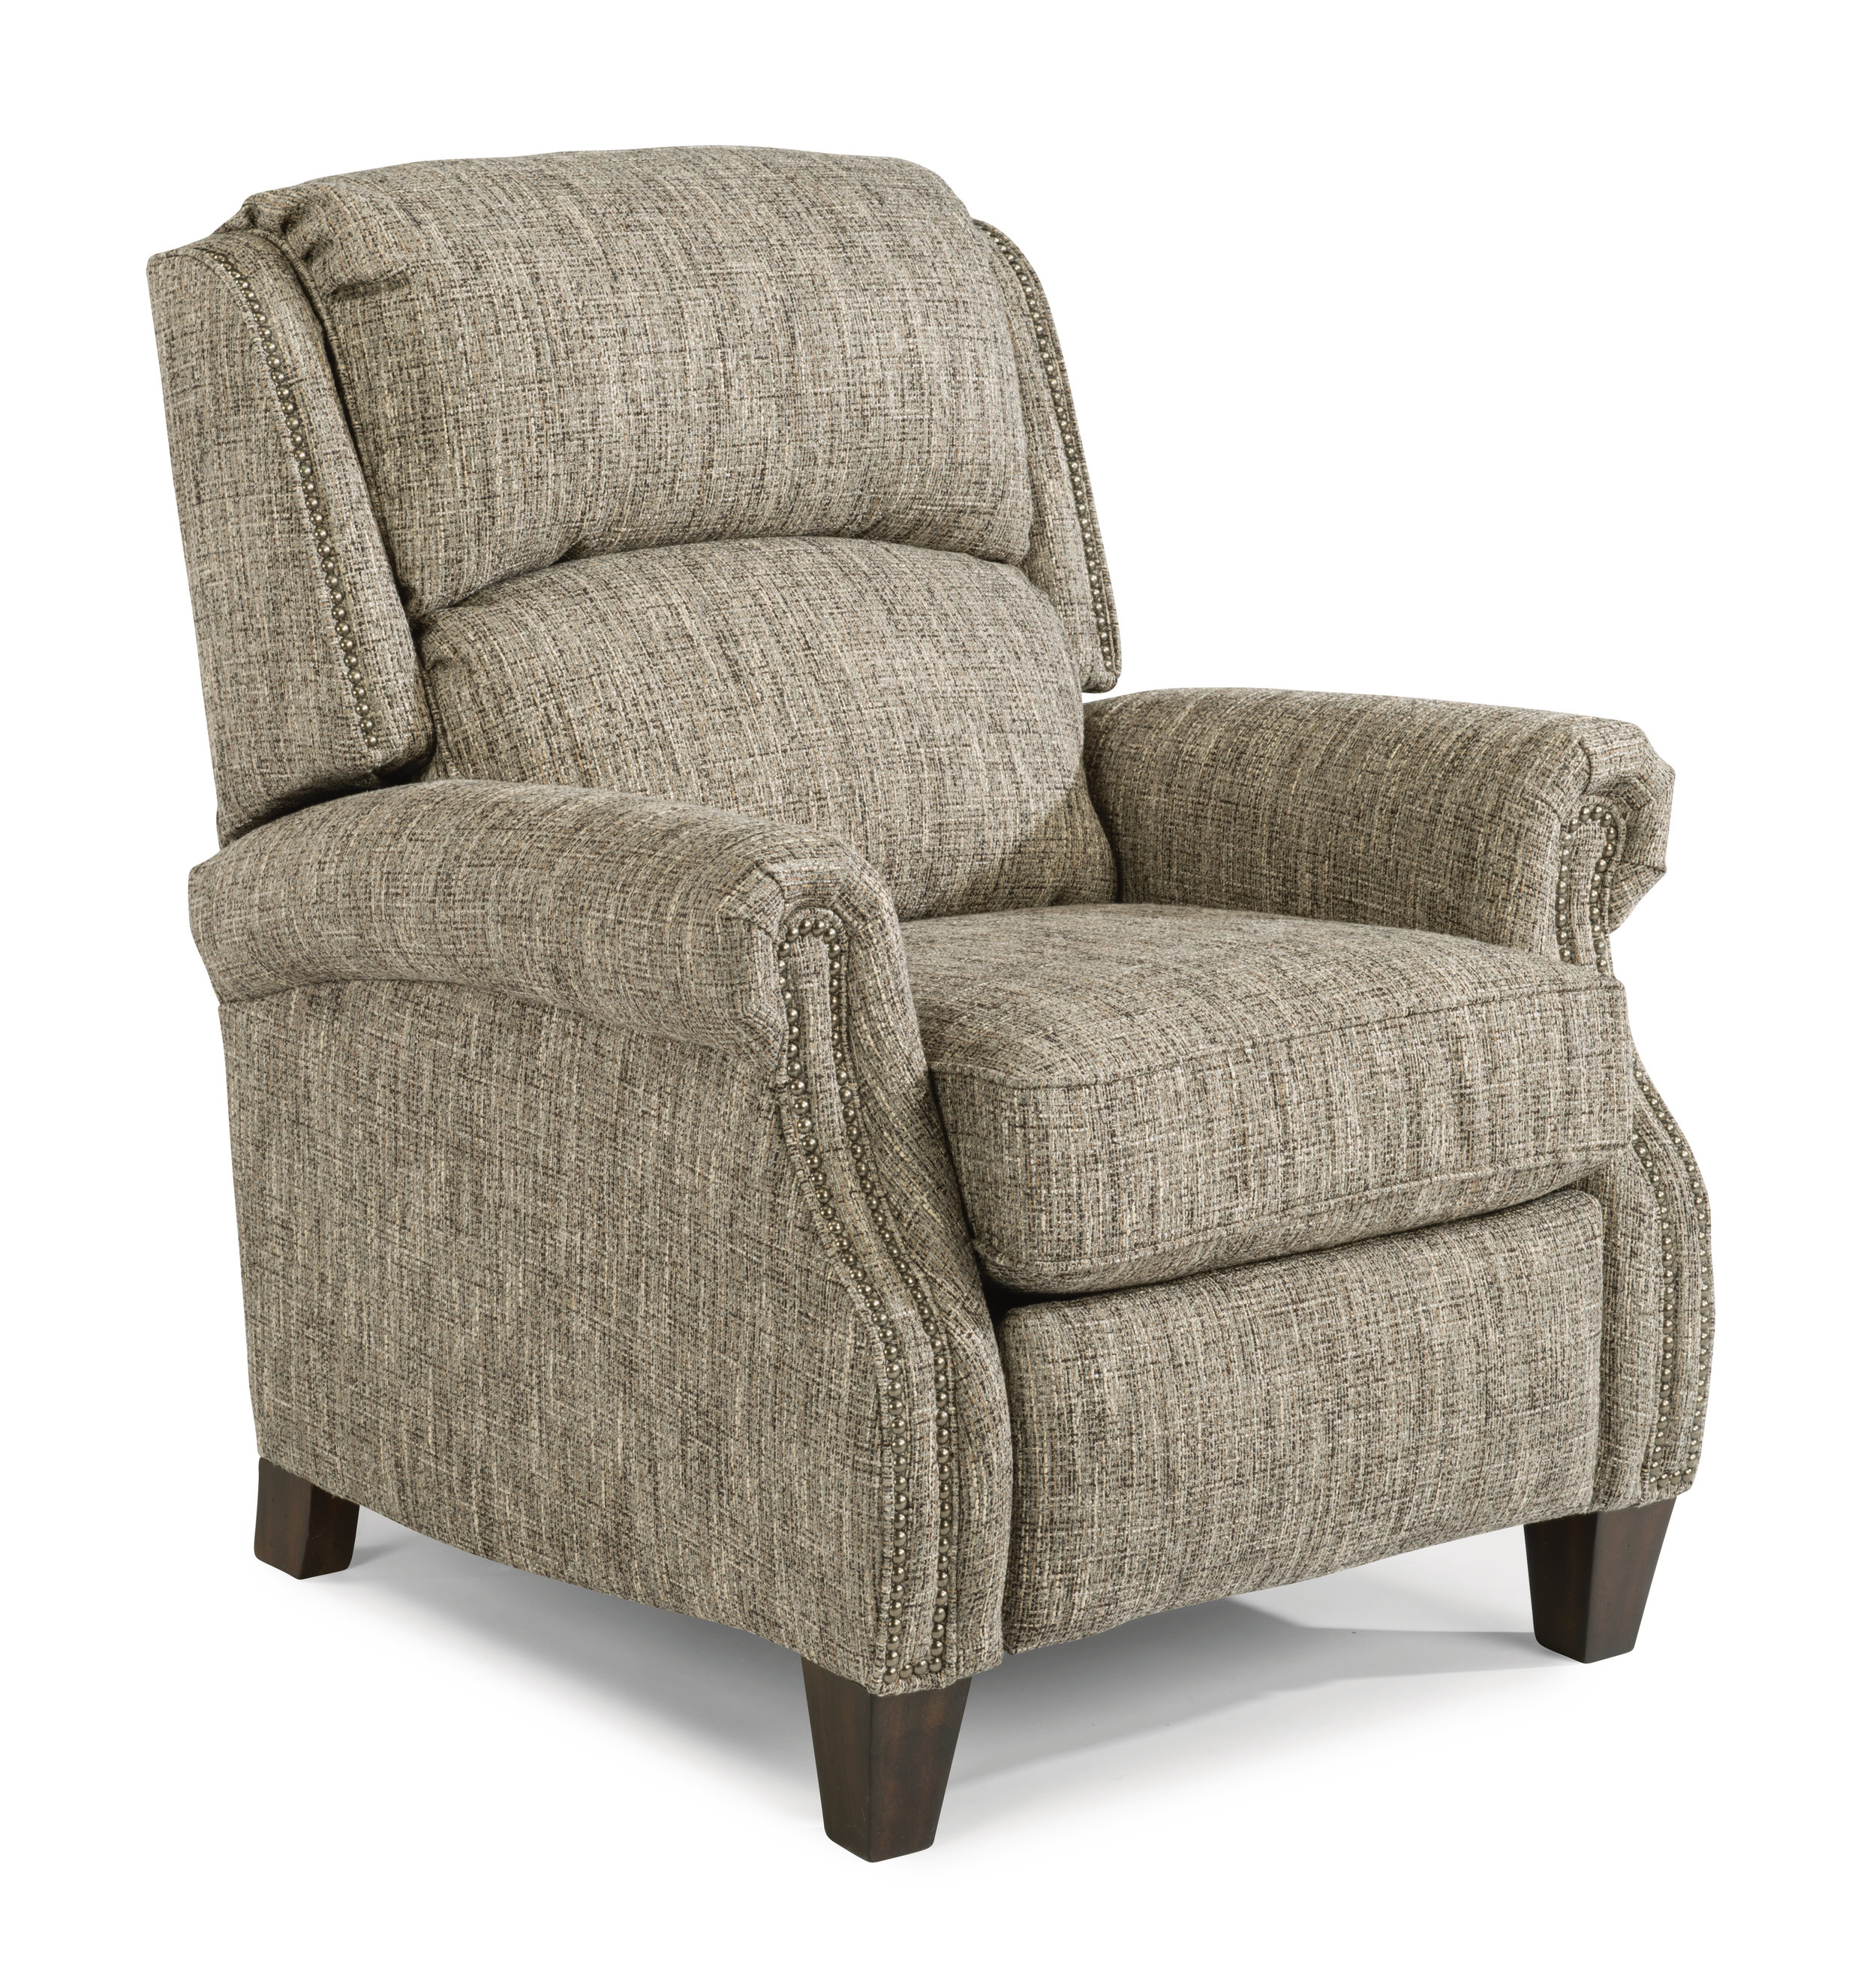 Recliners - Total Relaxation